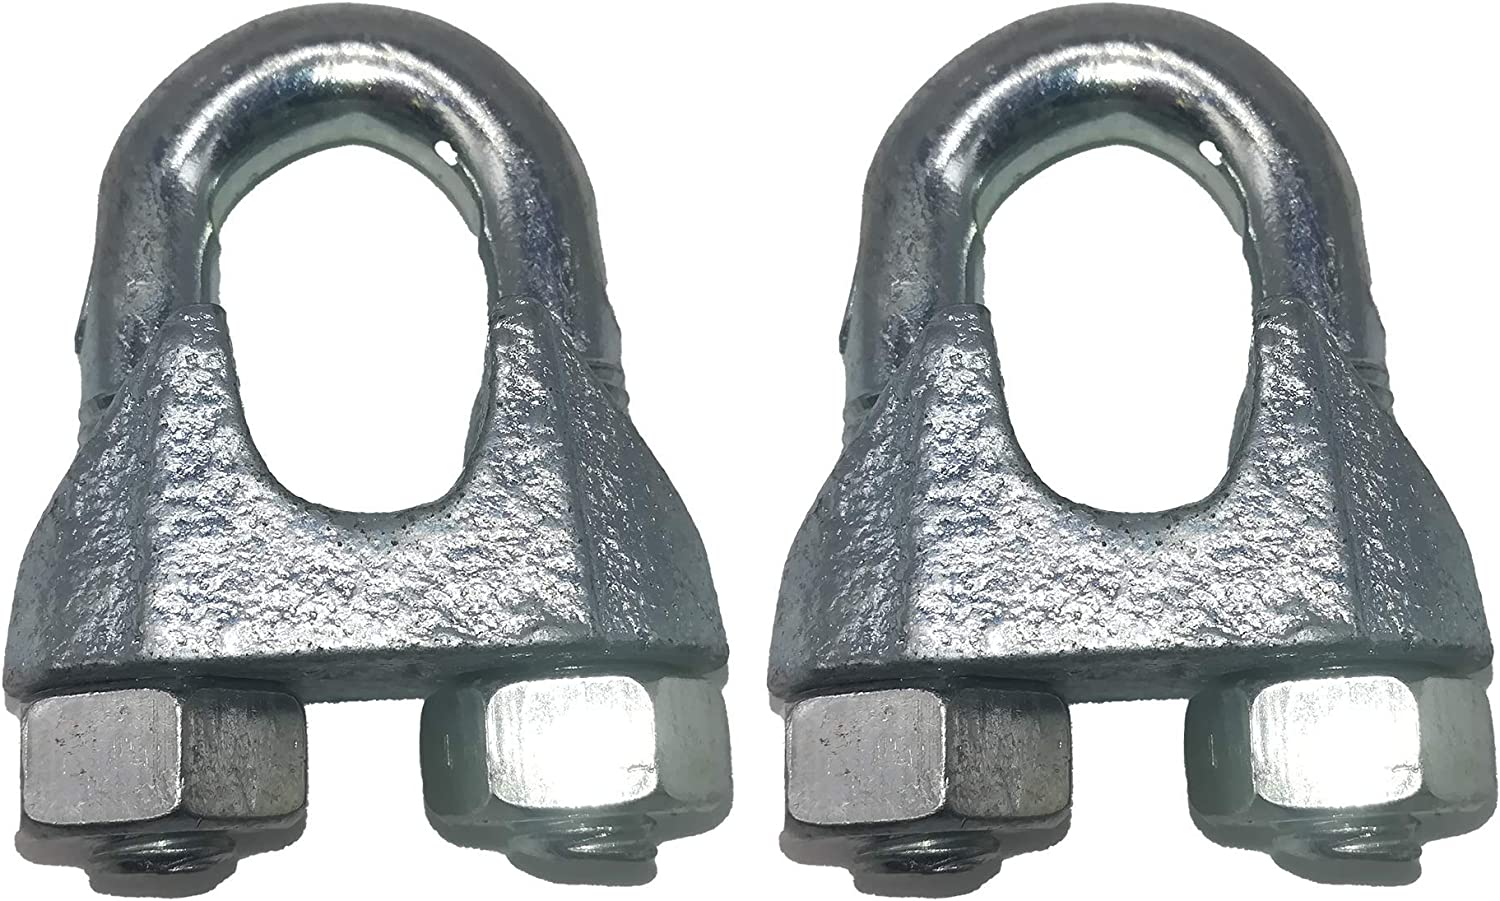 Pack of 2 pcs 2 M12 Stainless Steel 16 mm /Ø DIN 741 Clamps Slings Wire Clamp Cable Clip Crimps U Bolt Saddle Fastener for Steel Wire Rope